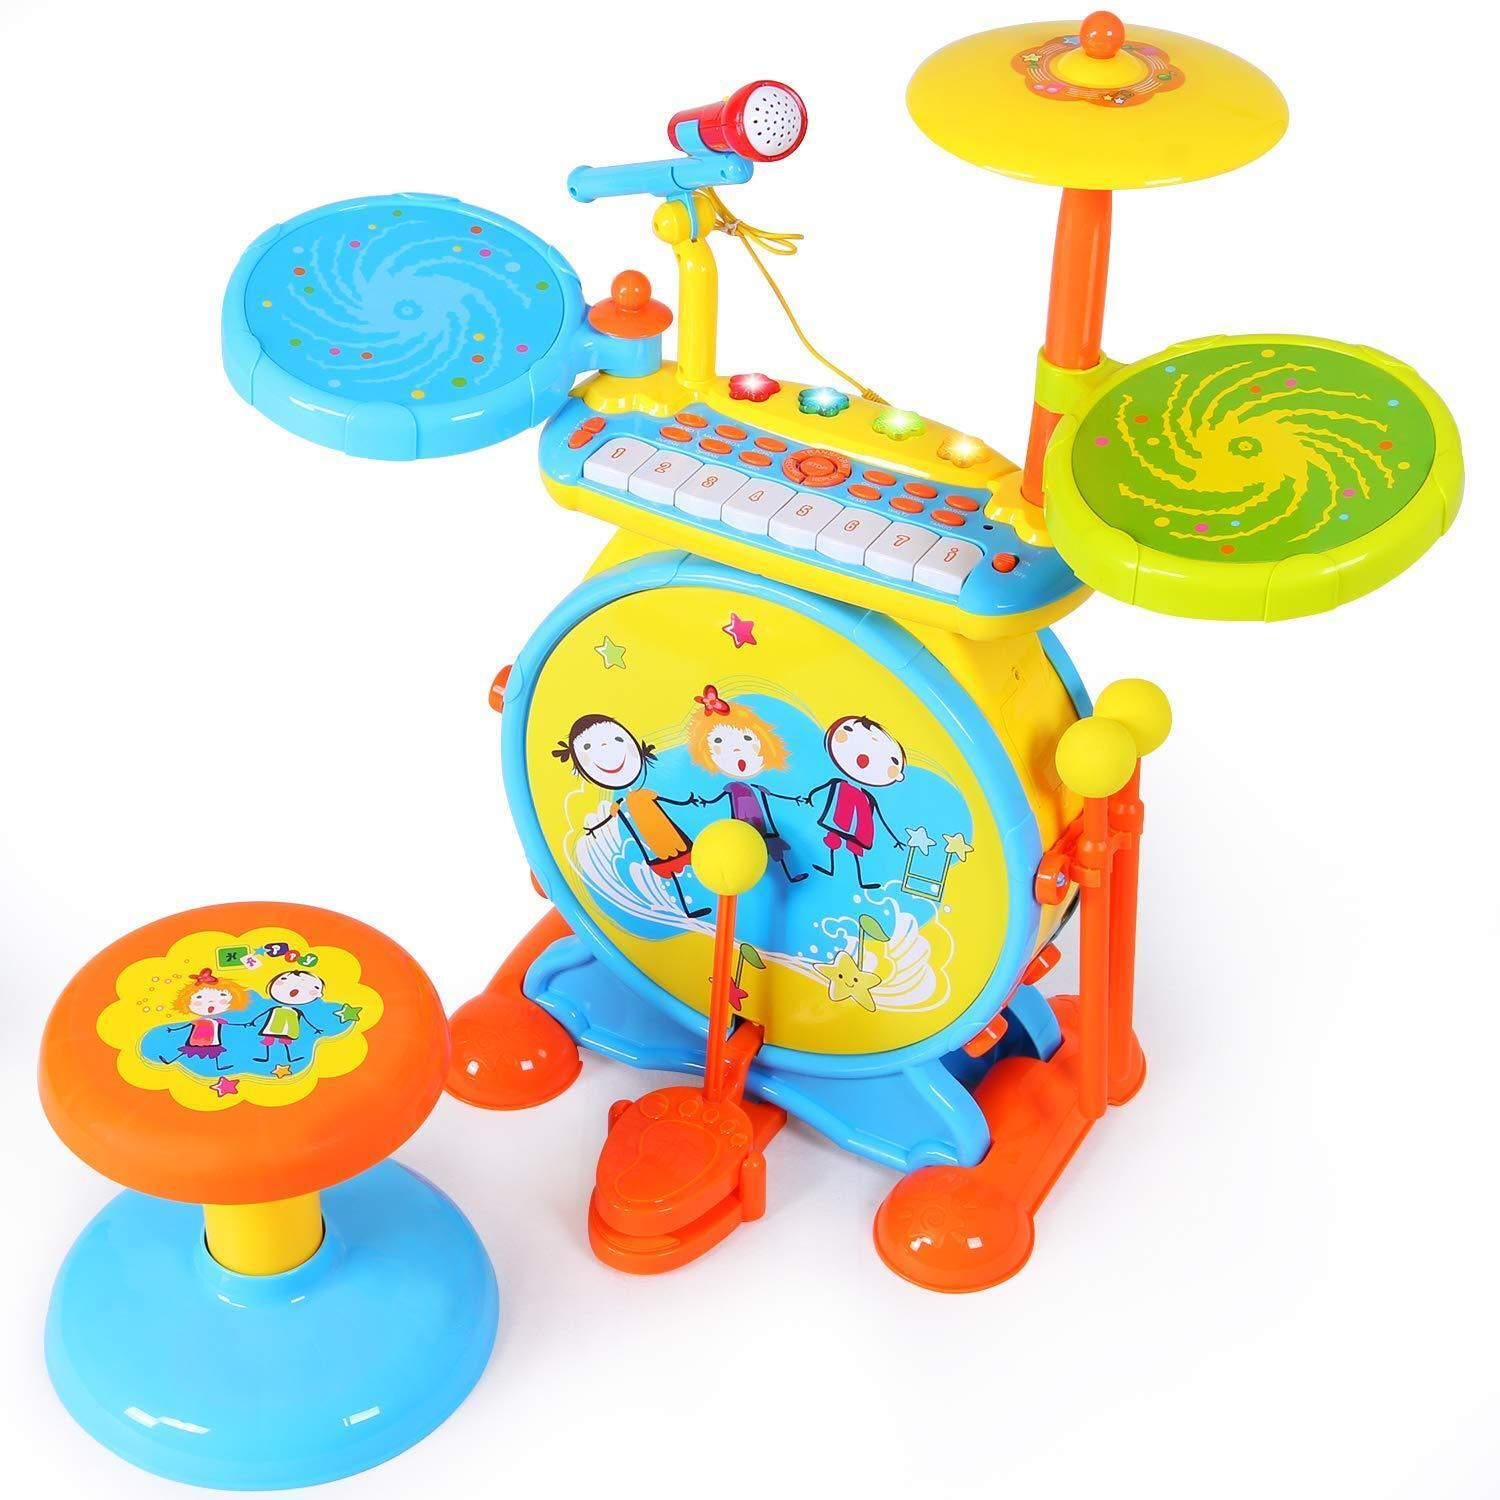 Kids Electronic Rock Drum Play Set with Keyboard and Microphone Musical Toy